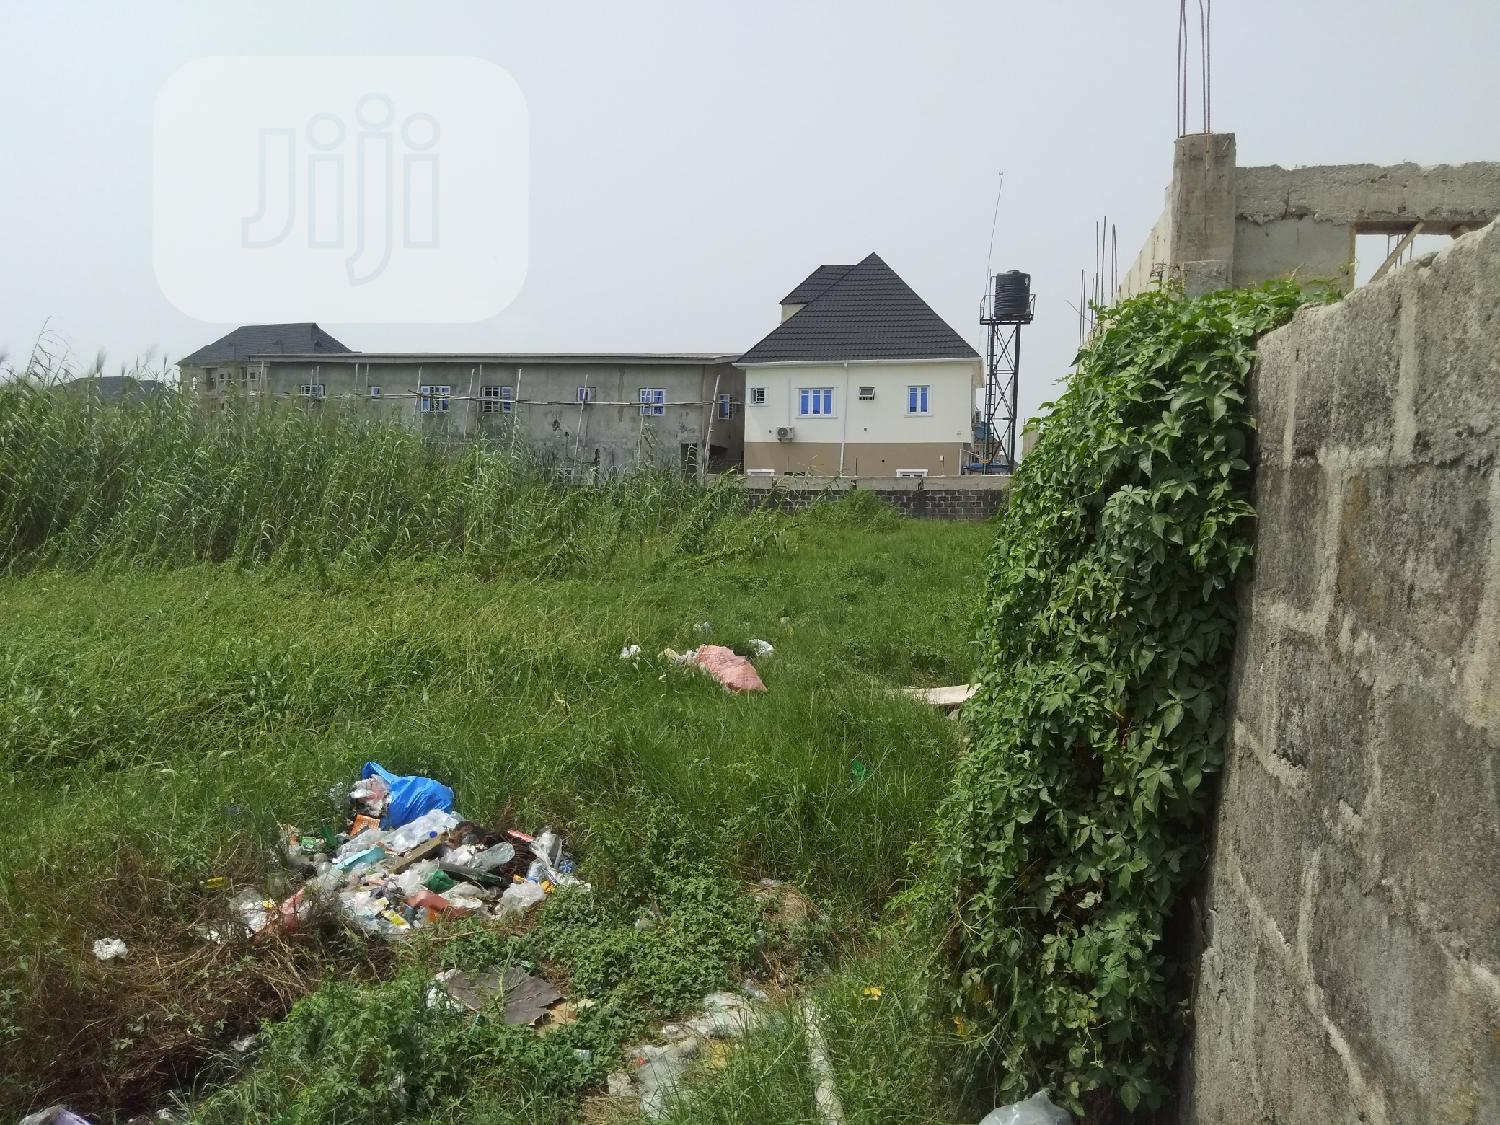 3plots Of Land Available For Rent At Ado Road | Land & Plots for Rent for sale in Ado / Ajah, Ajah, Nigeria